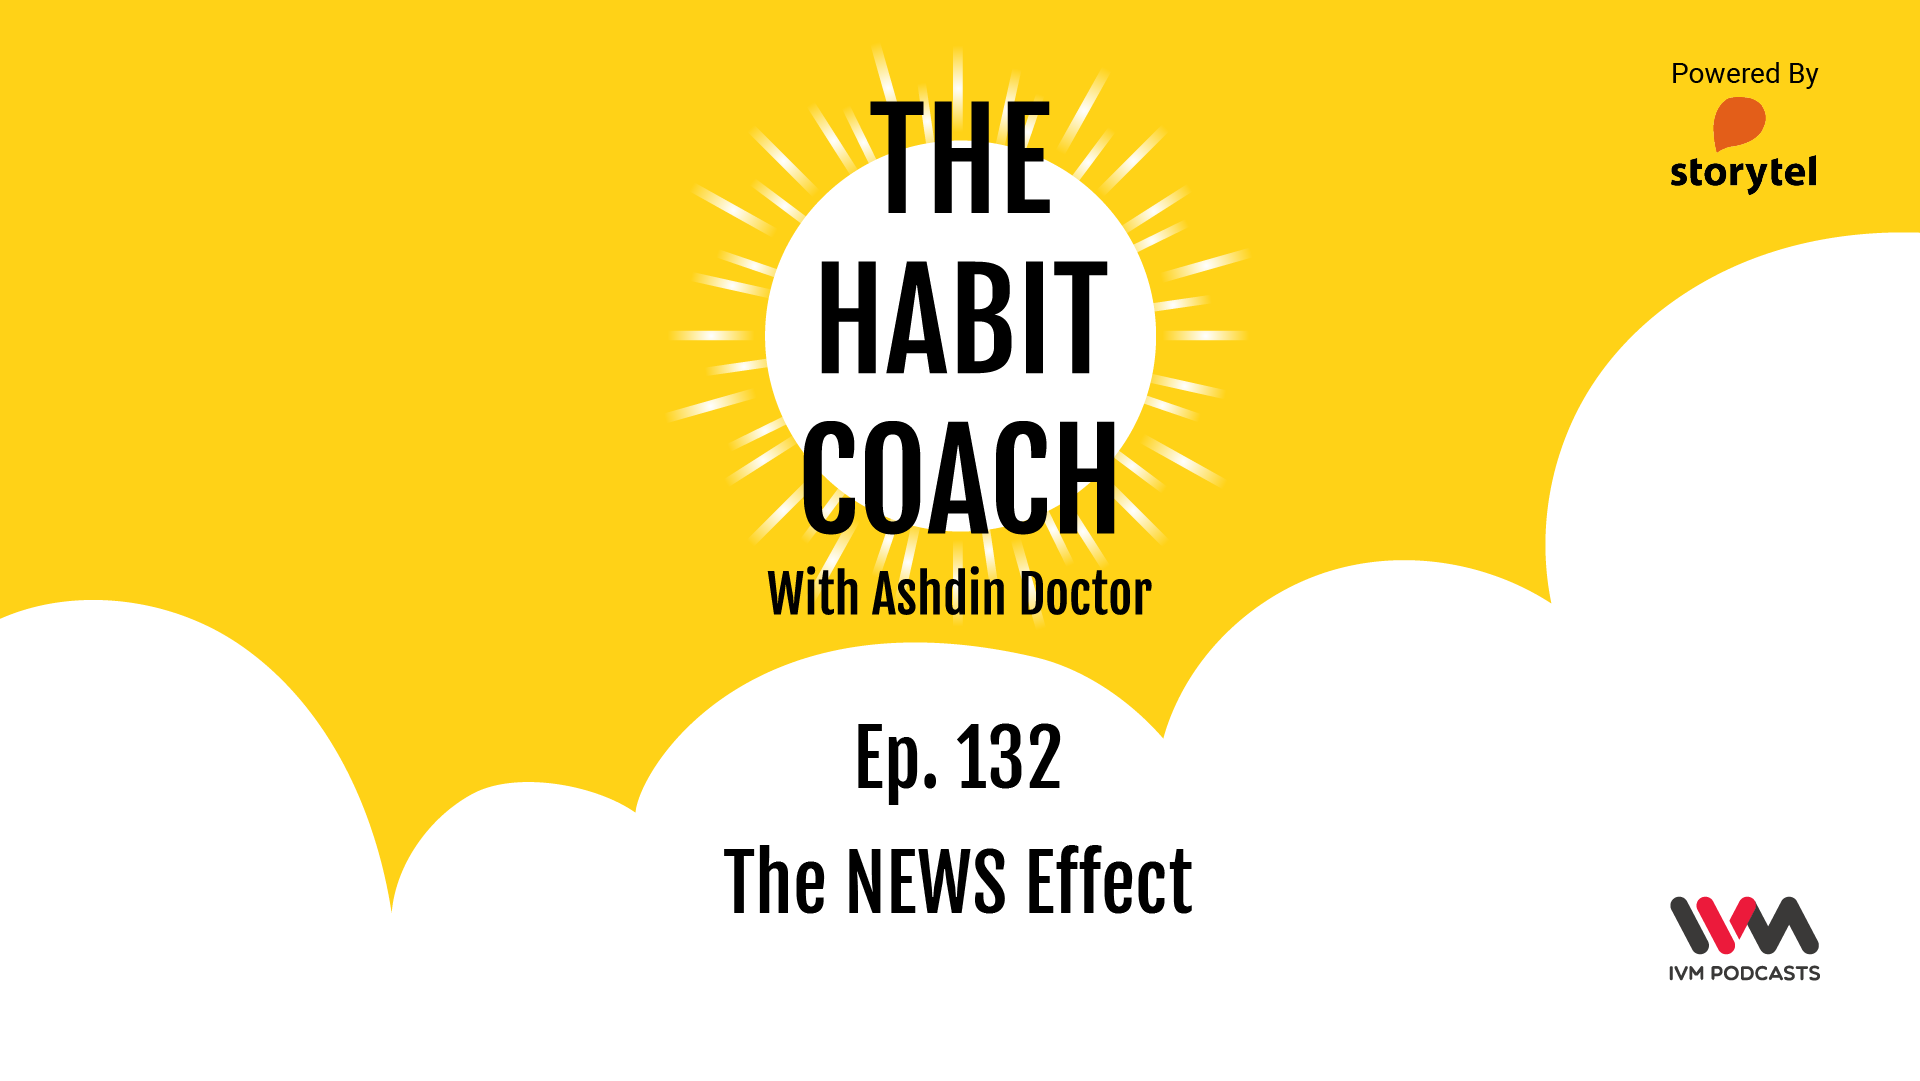 TheHabitCoachEpisode132.png